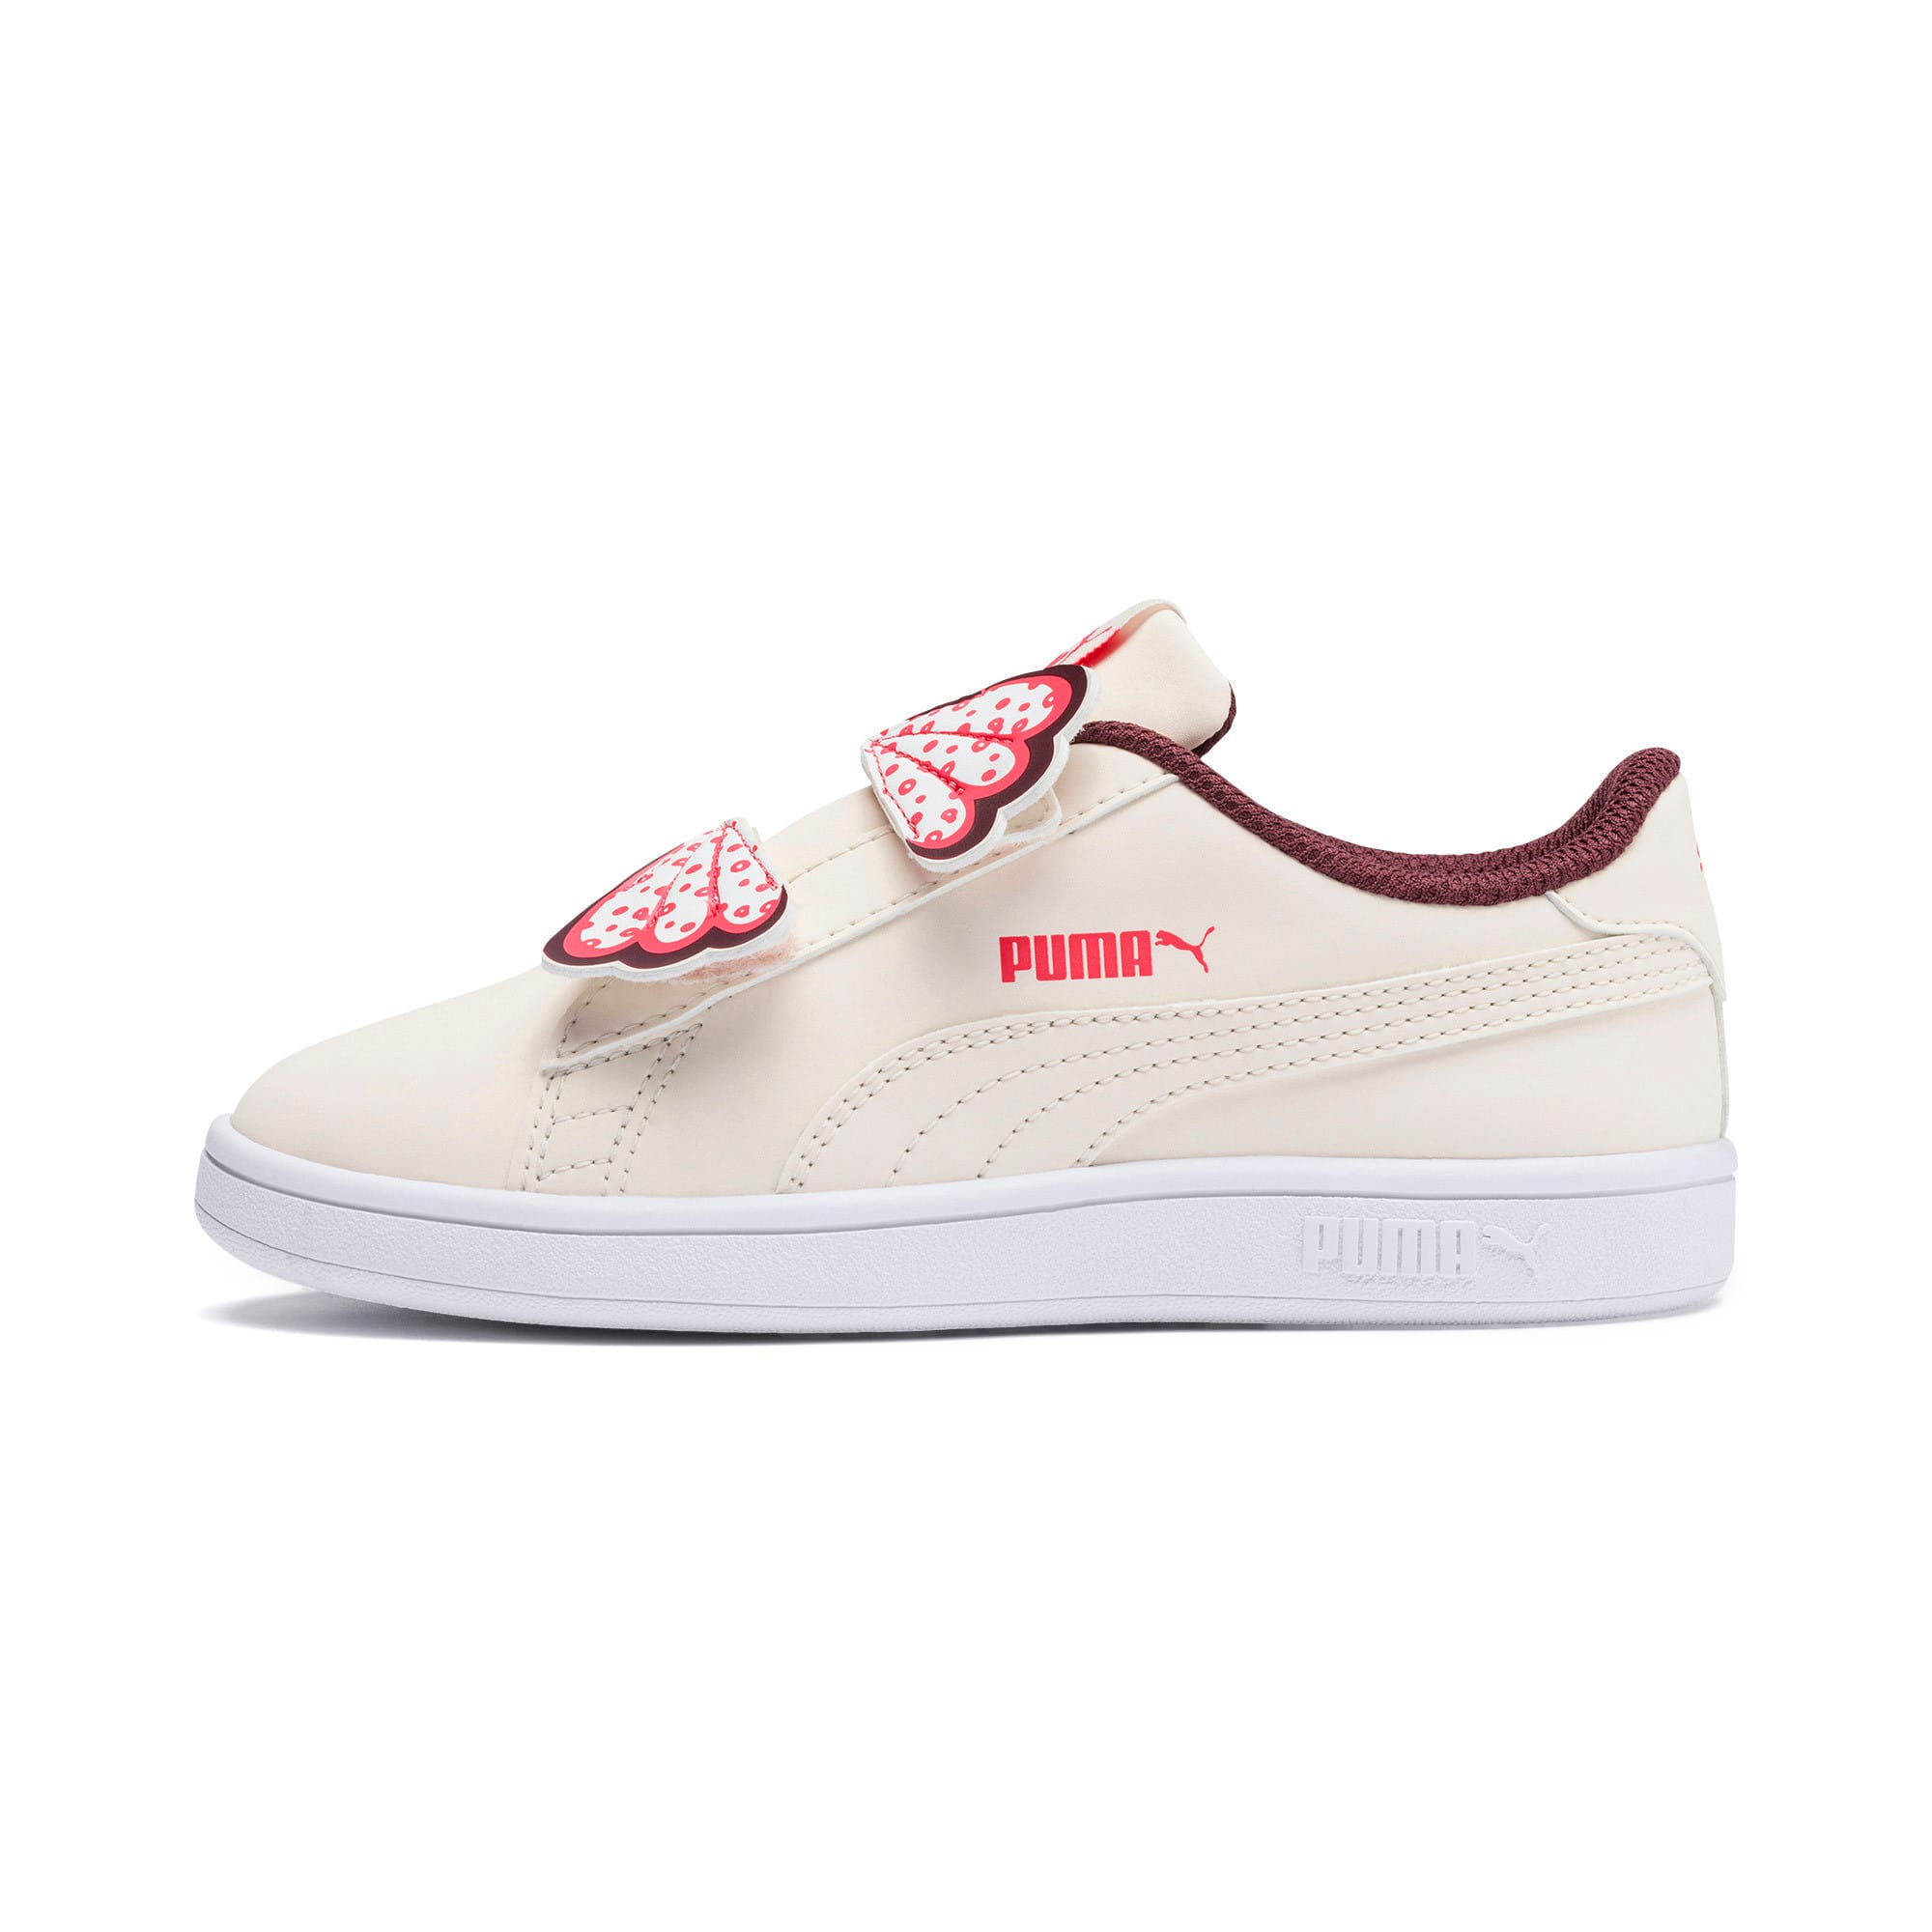 Thumbnail 1 of PUMA Smash v2 Butterfly Kid Girls' Trainers, Pastel Parchment-Vineyard, medium